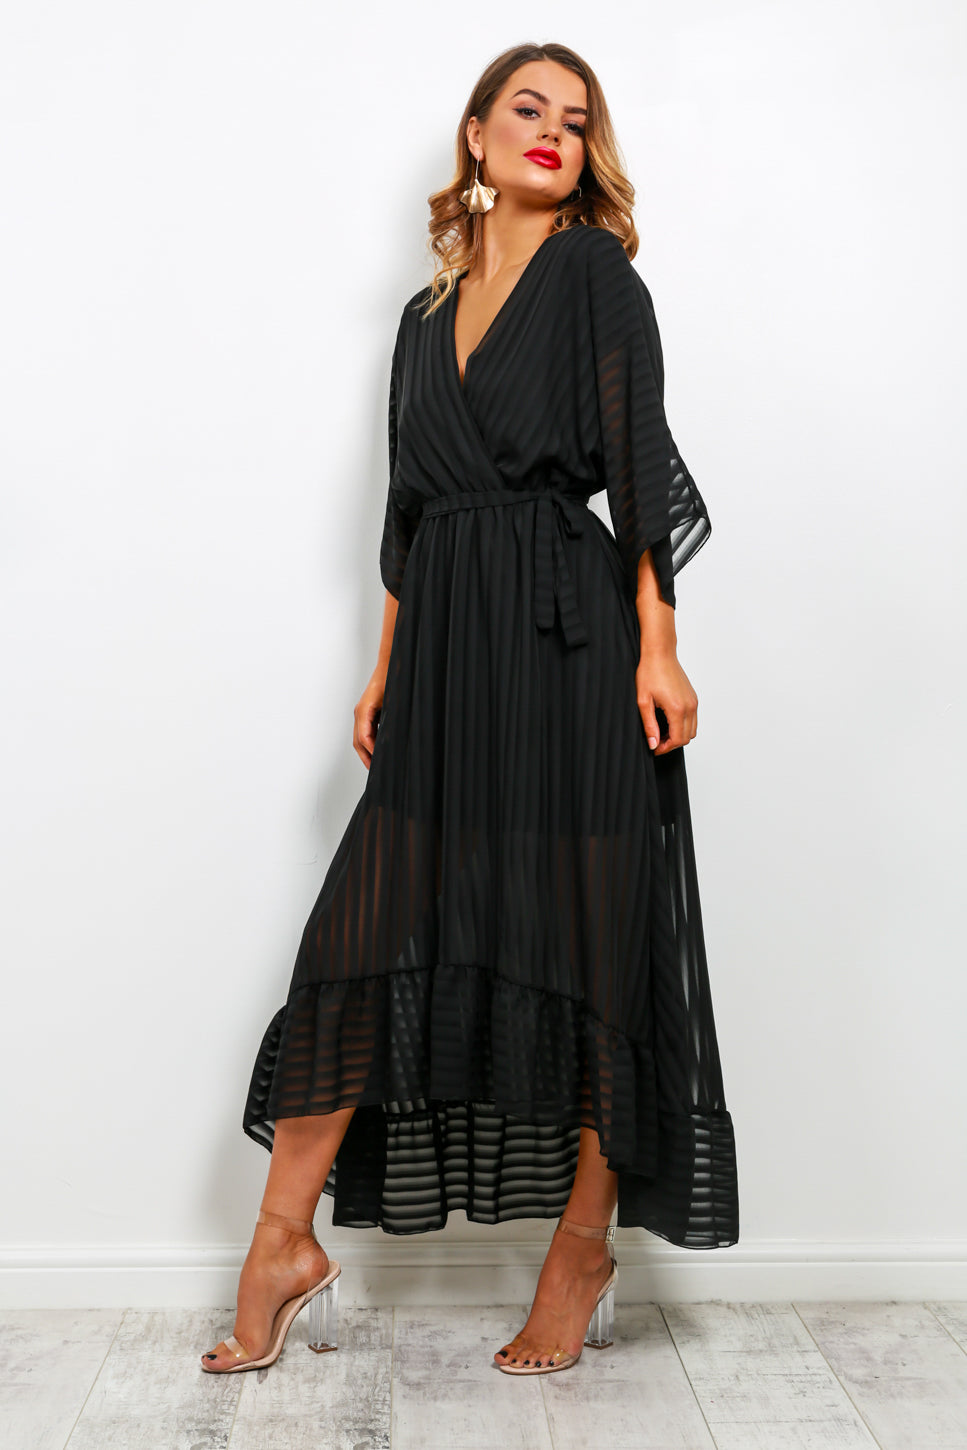 Dolce Vita - Black Midi Dress